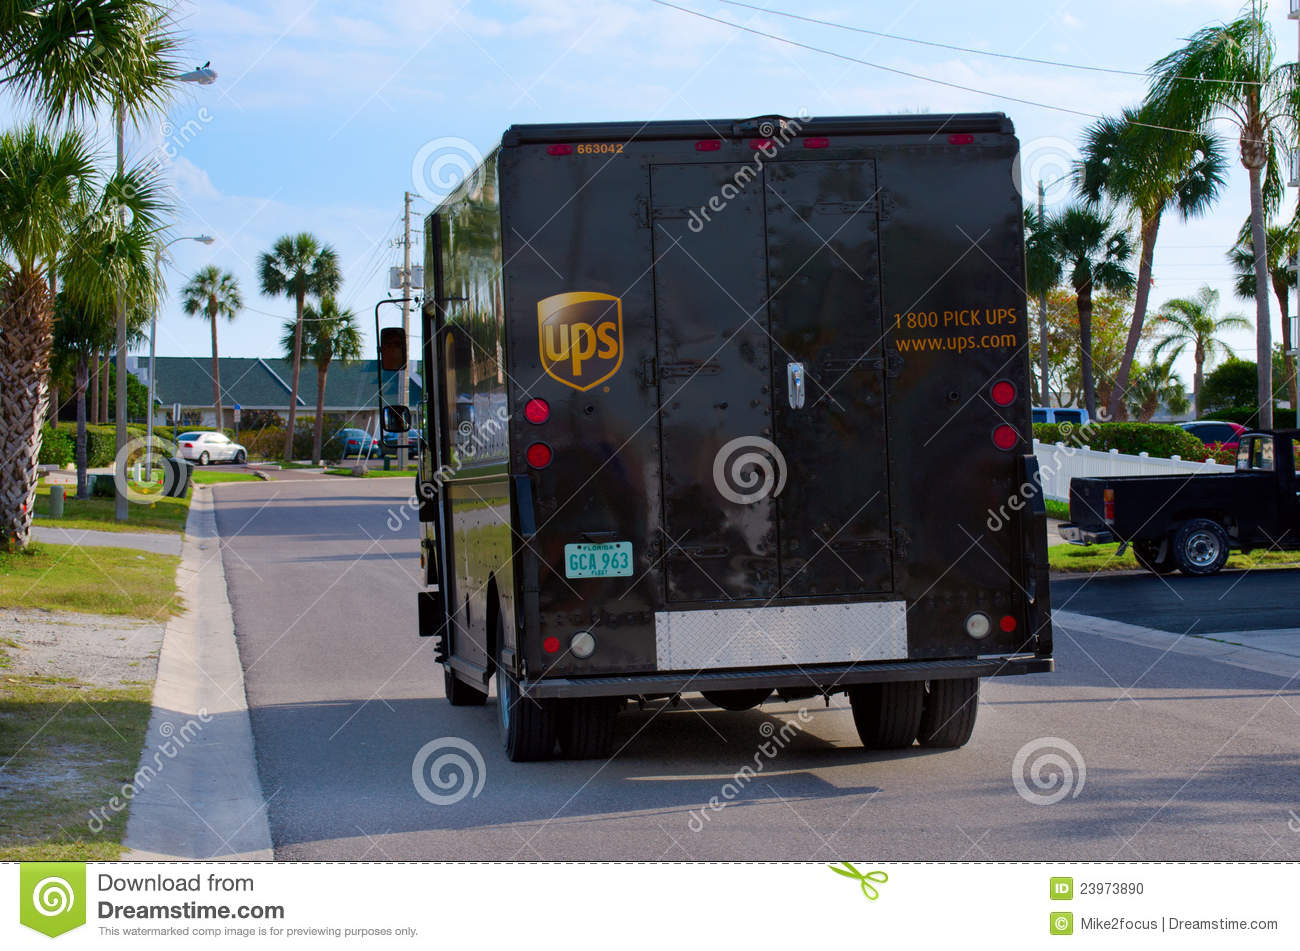 United parcel service ups truck van delivery editorial image image